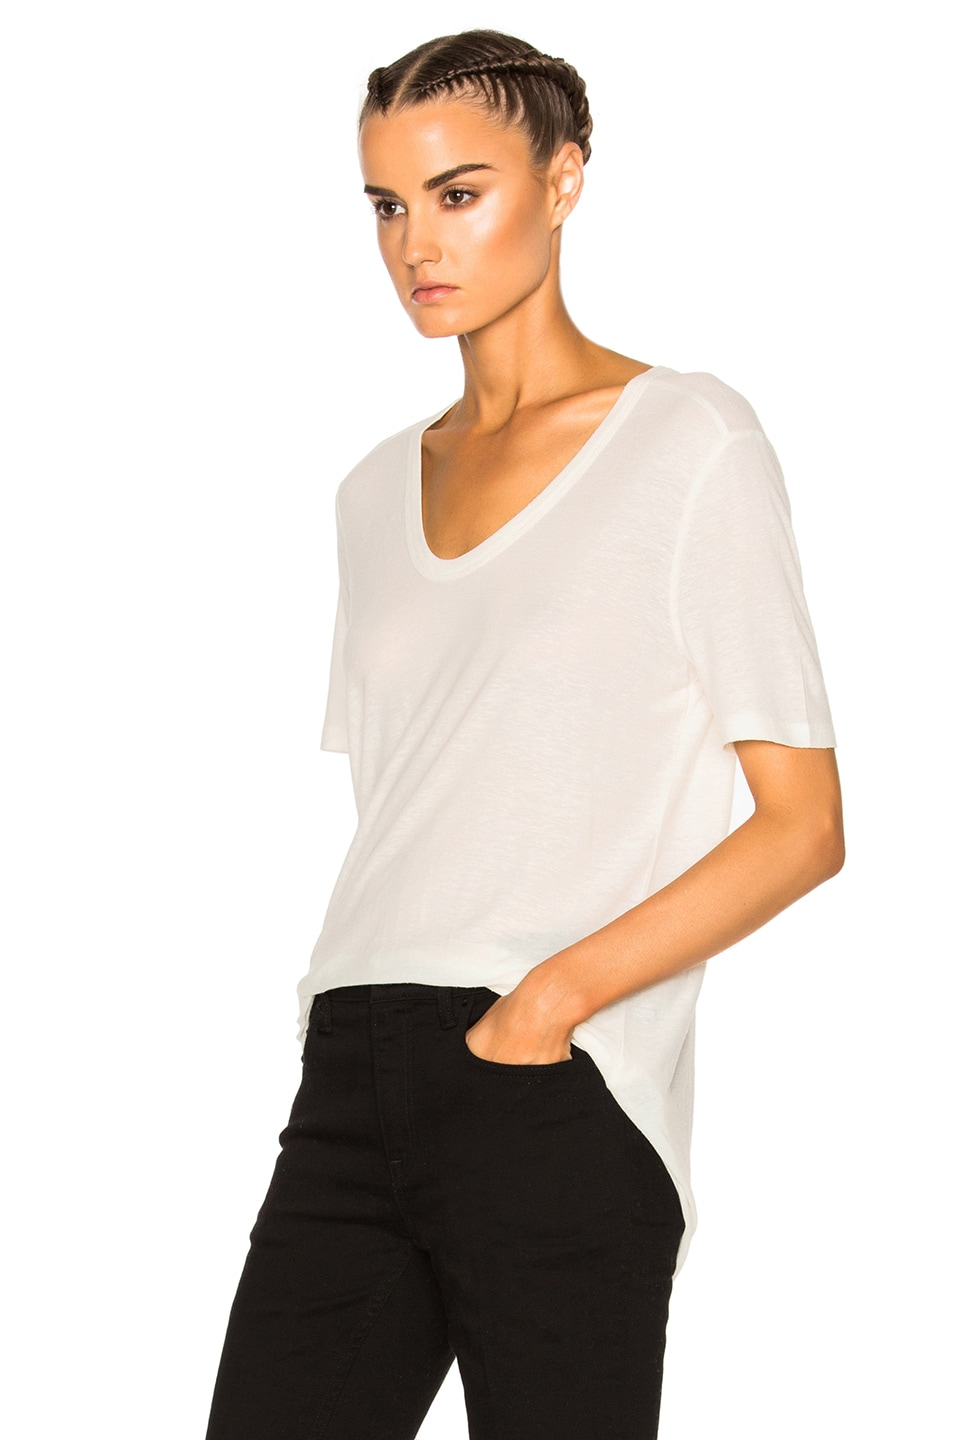 Image 2 of T by Alexander Wang Slub Classic Viscose-Blend Tee in Ivory